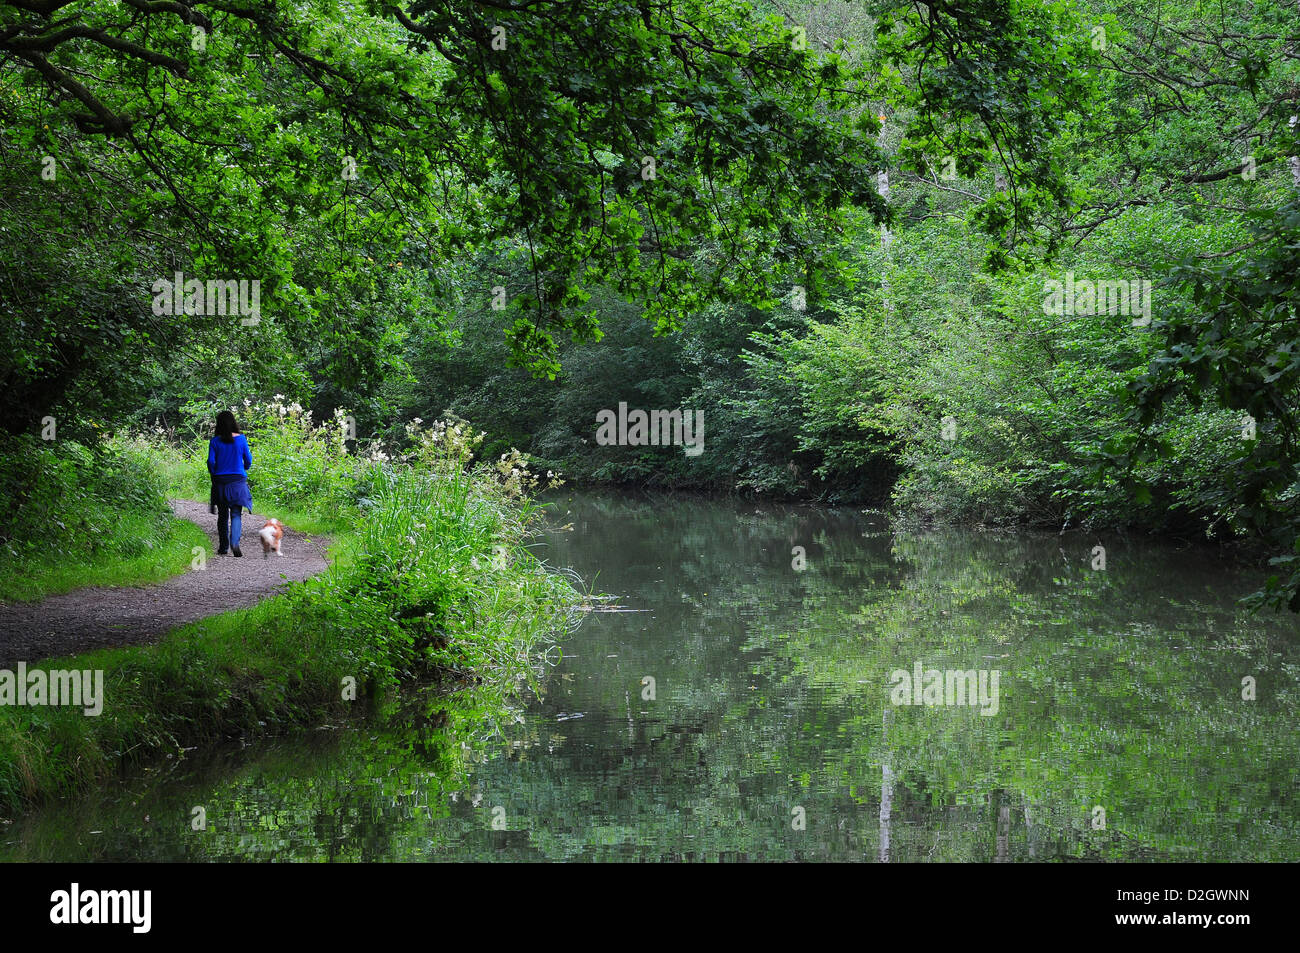 A view of the Basingstoke Canal - Stock Image